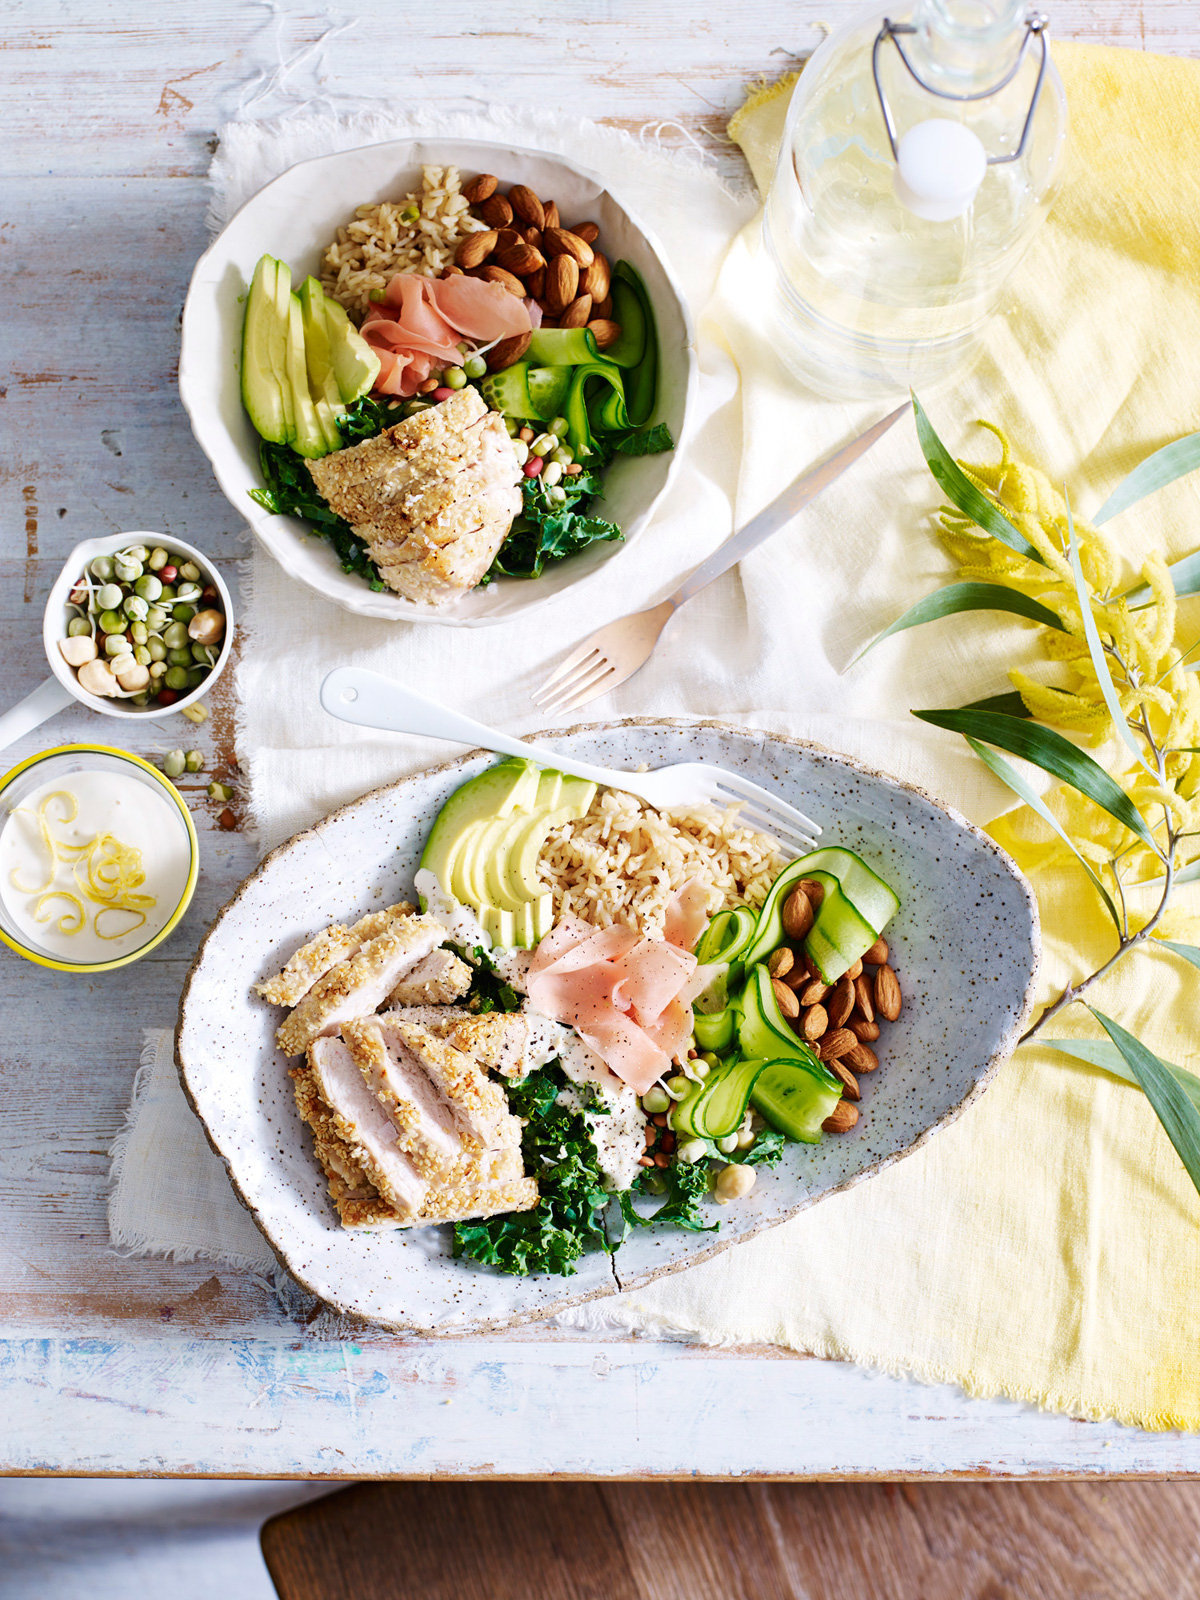 Andy-Lewis-food-photographer-©-photography_Lilydale_Spring_Sesame-Chicken-Healthy-Salad-Bowl.jpg